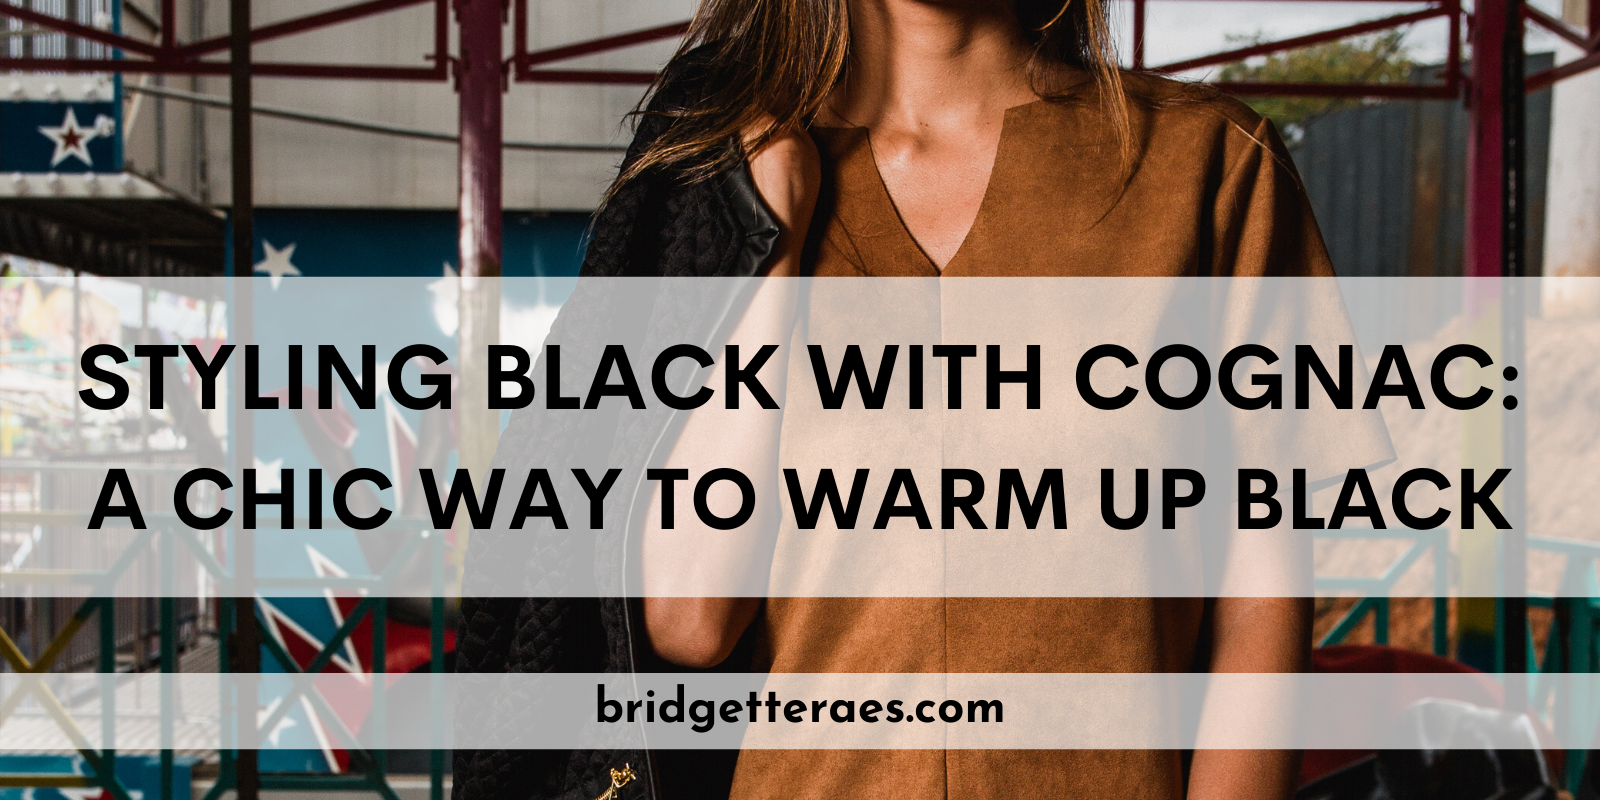 Styling Black with Cognac: A Chic Way to Warm Up Black